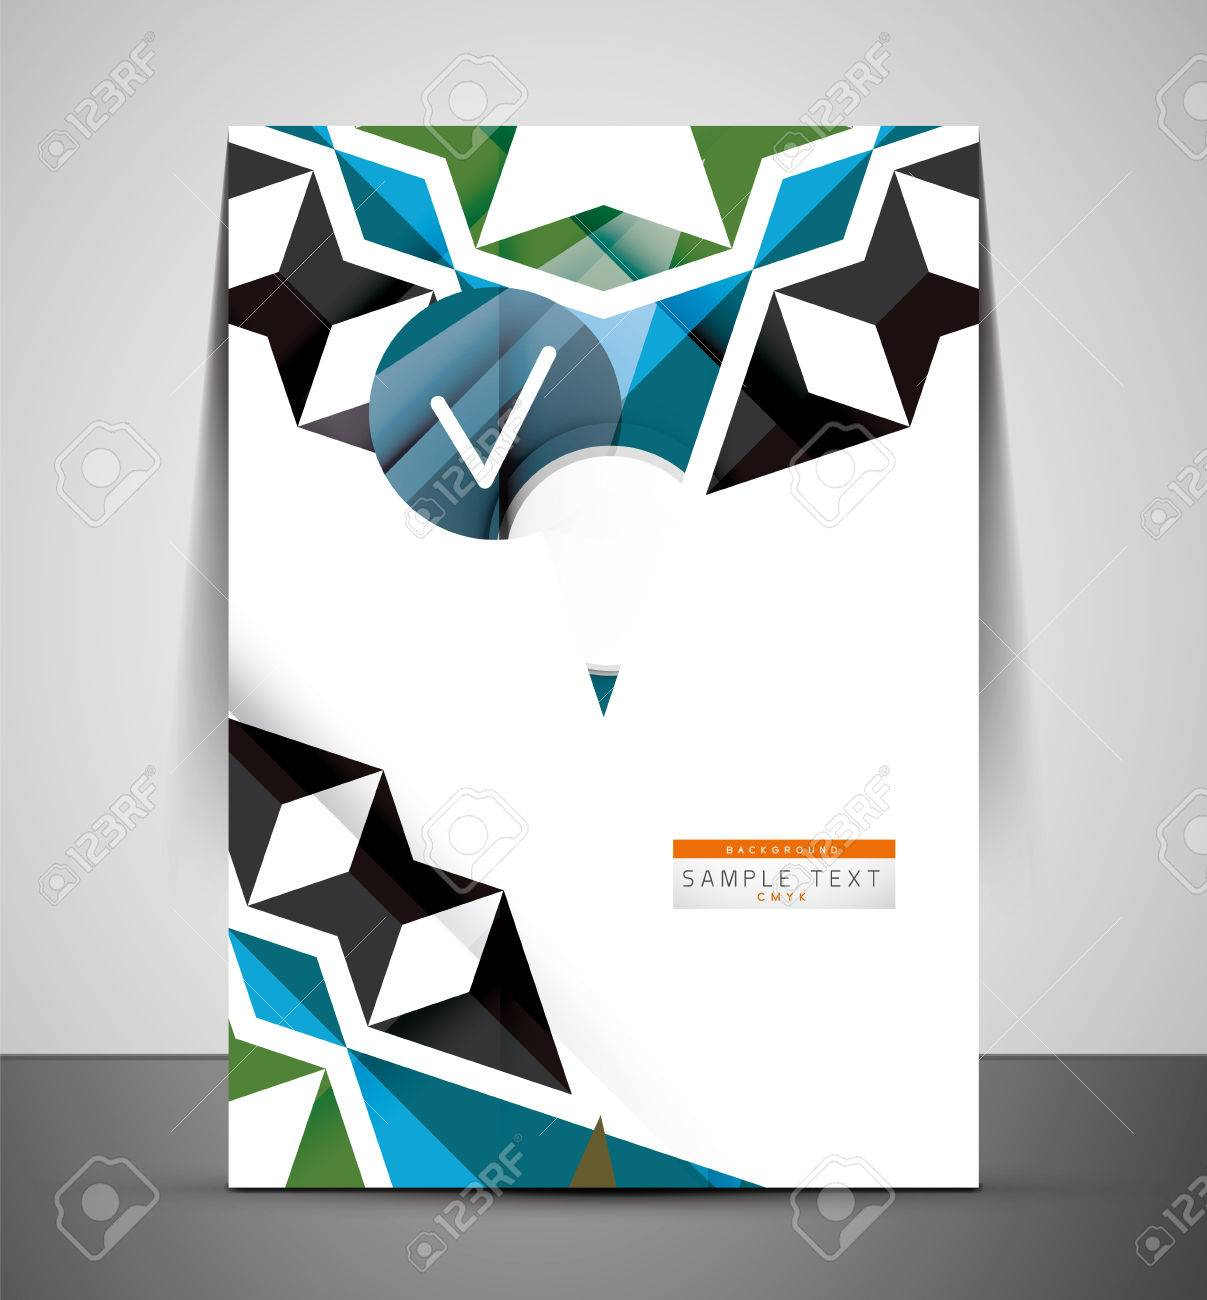 cmyk business corporate flyer template geometrical design cmyk business corporate flyer template geometrical design stock vector 27687200